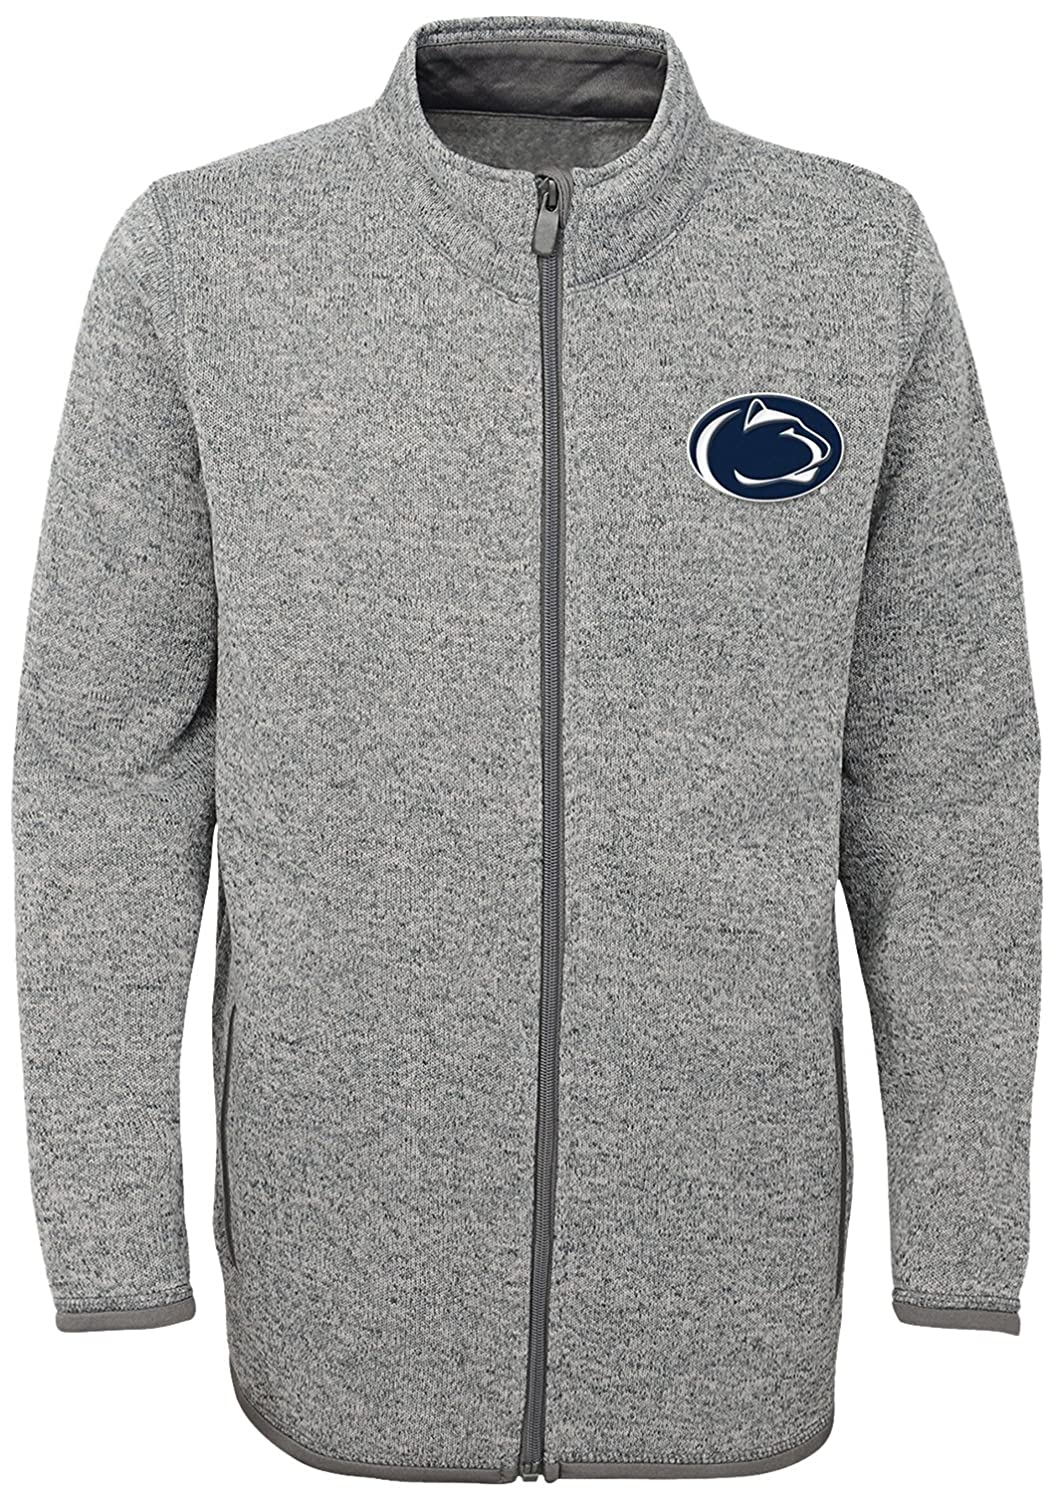 Outerstuff NCAA Mens Lima Full Zip Fleece Jacket